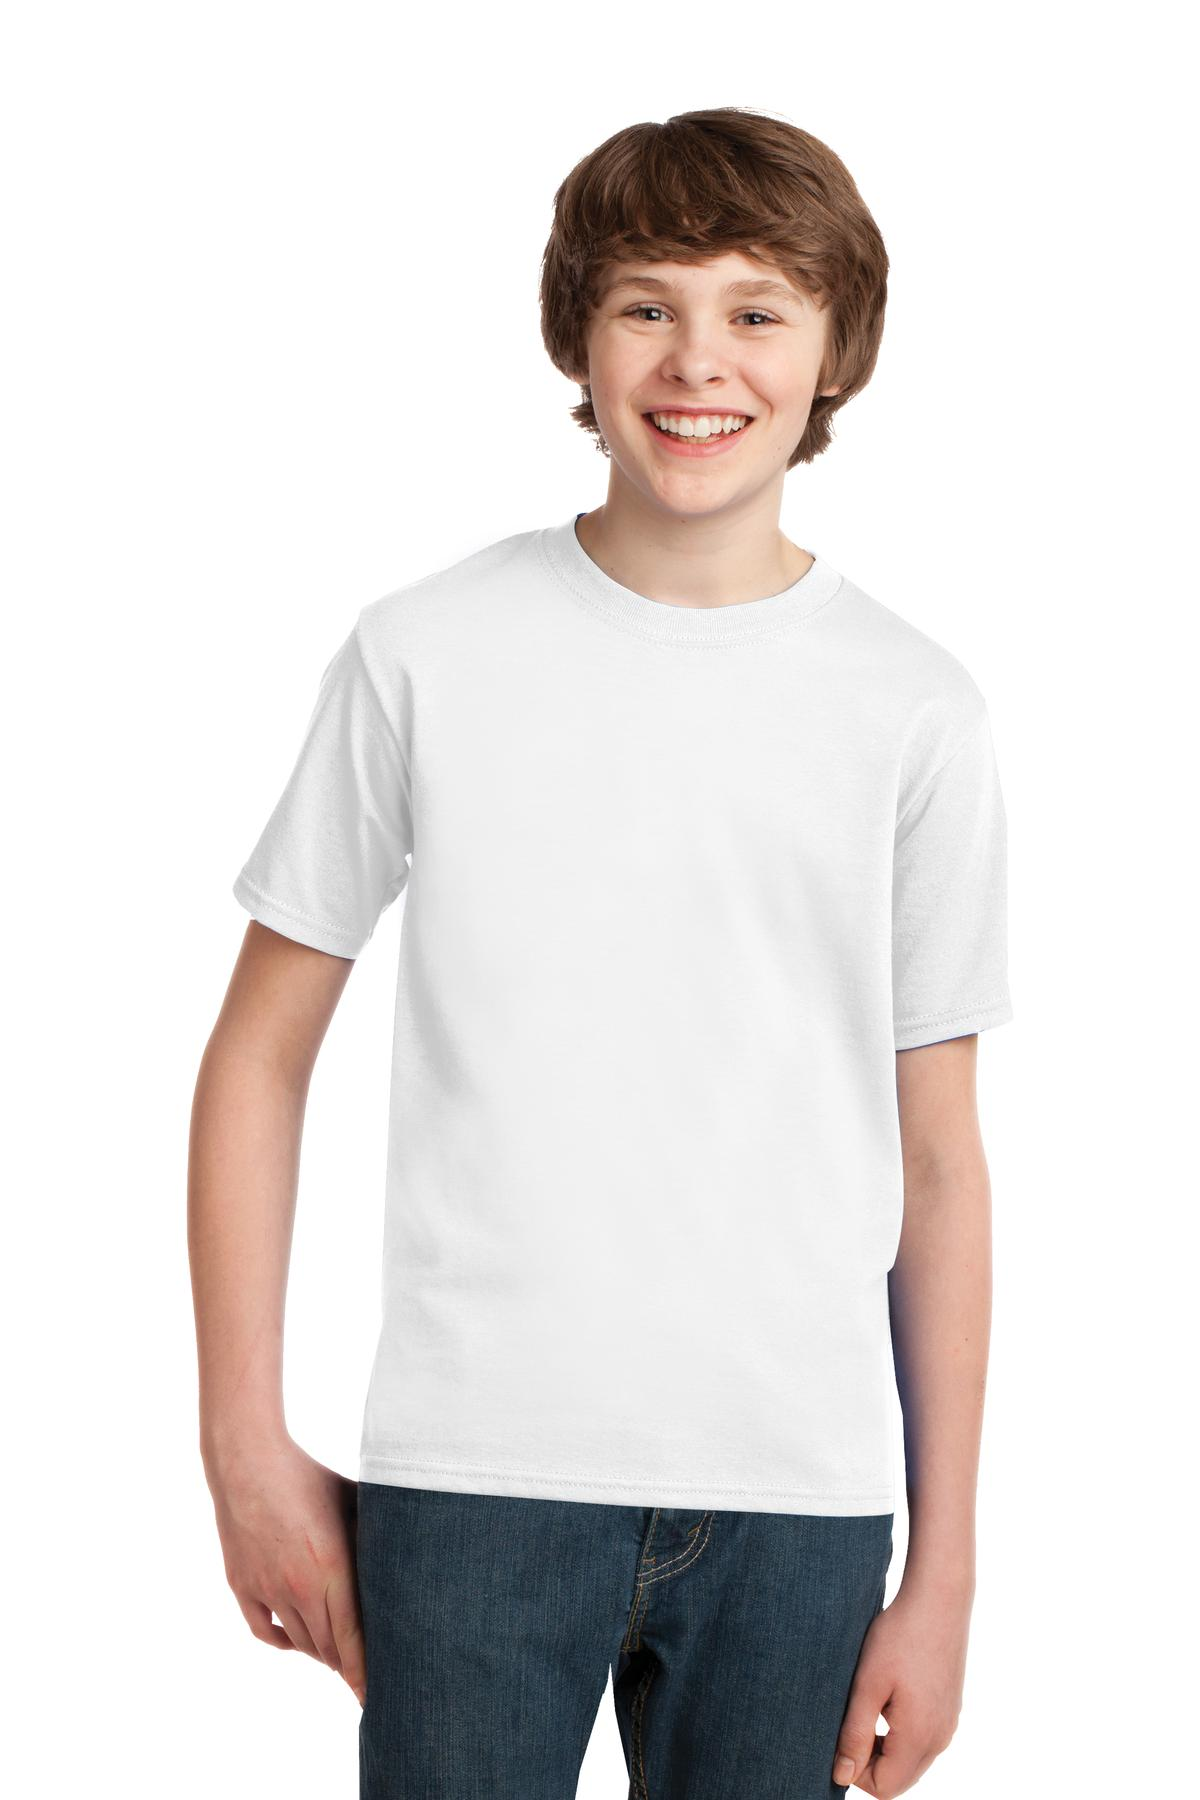 Port & Company ®  - Youth Essential Tee. PC61Y - White